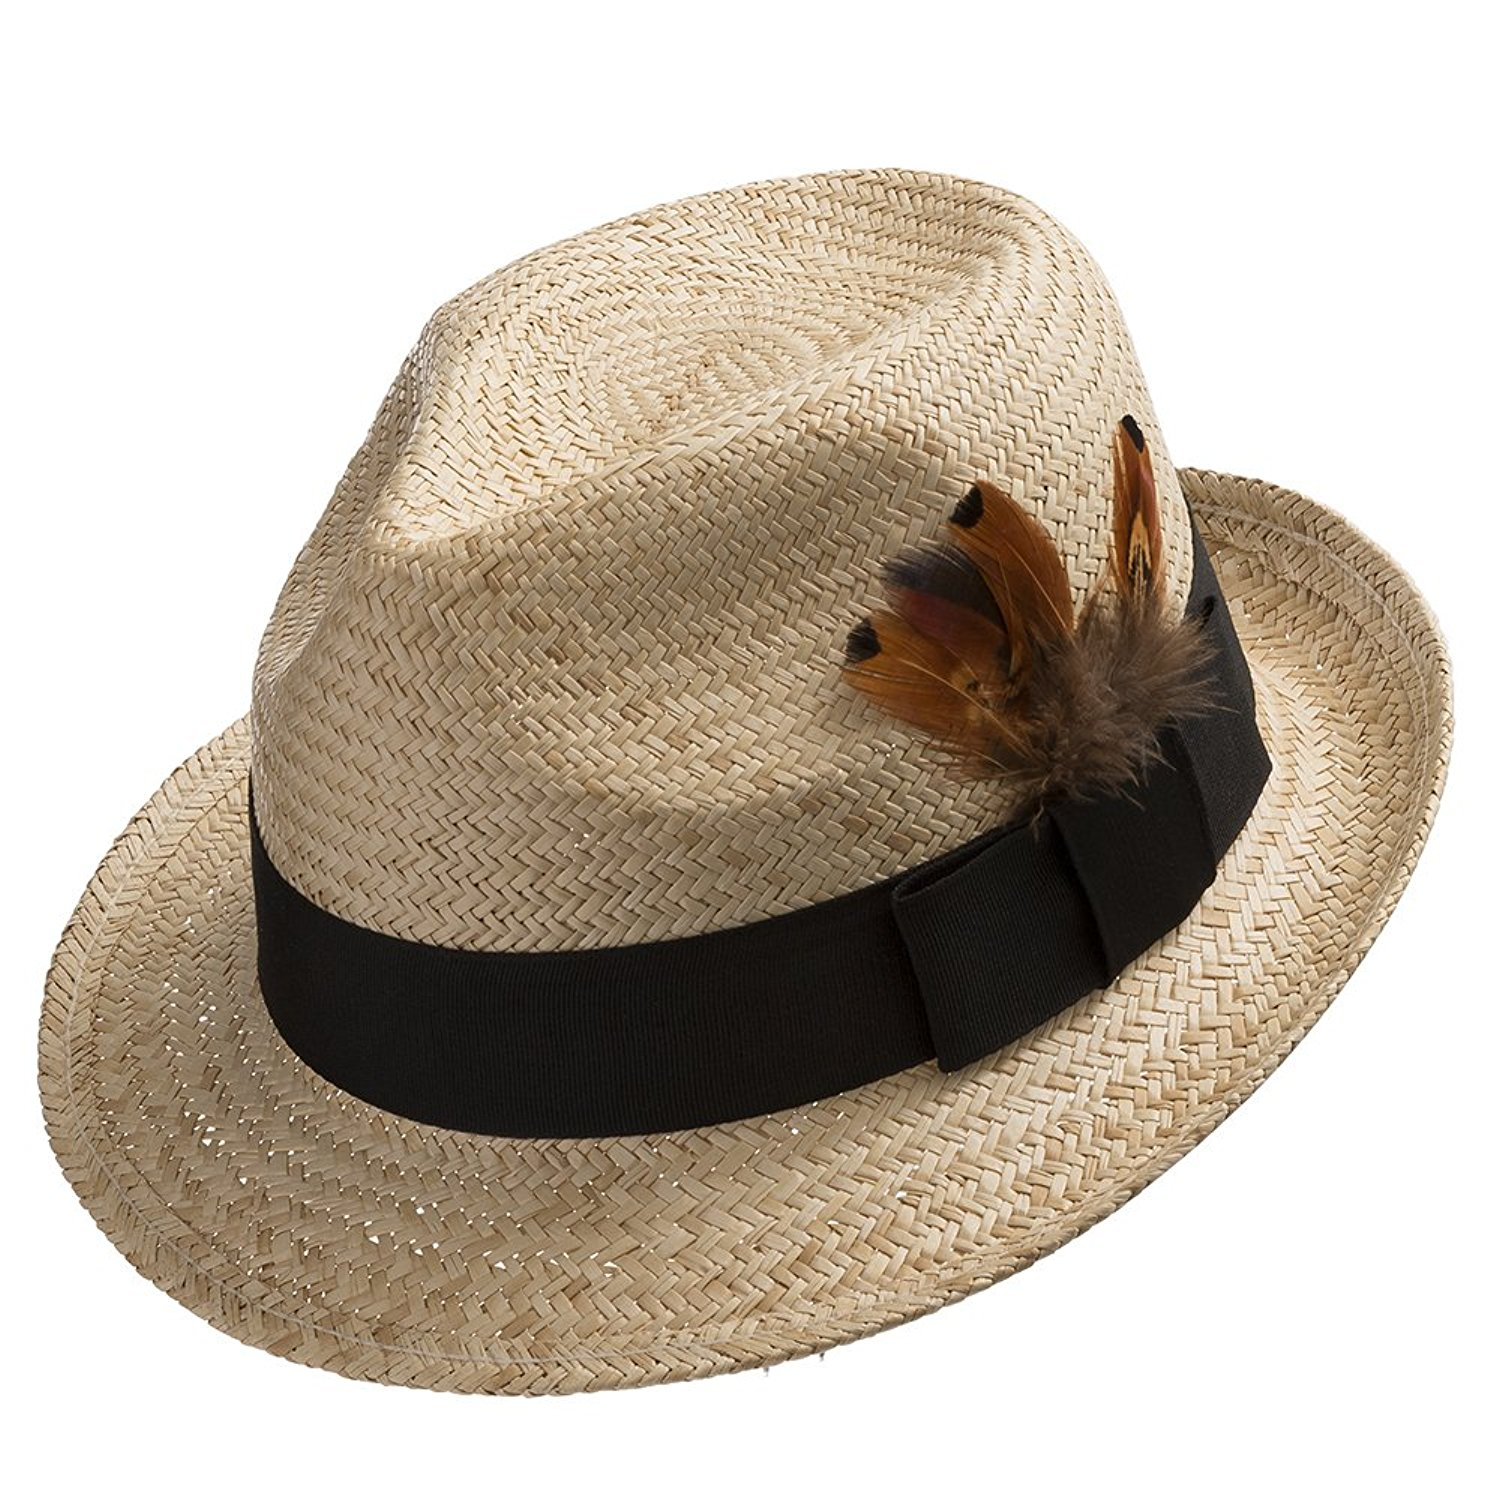 ba92ff55a9733 Get Quotations · Ultrafino Fedora Sedona Straw Panama Hat Trilby with  Feather